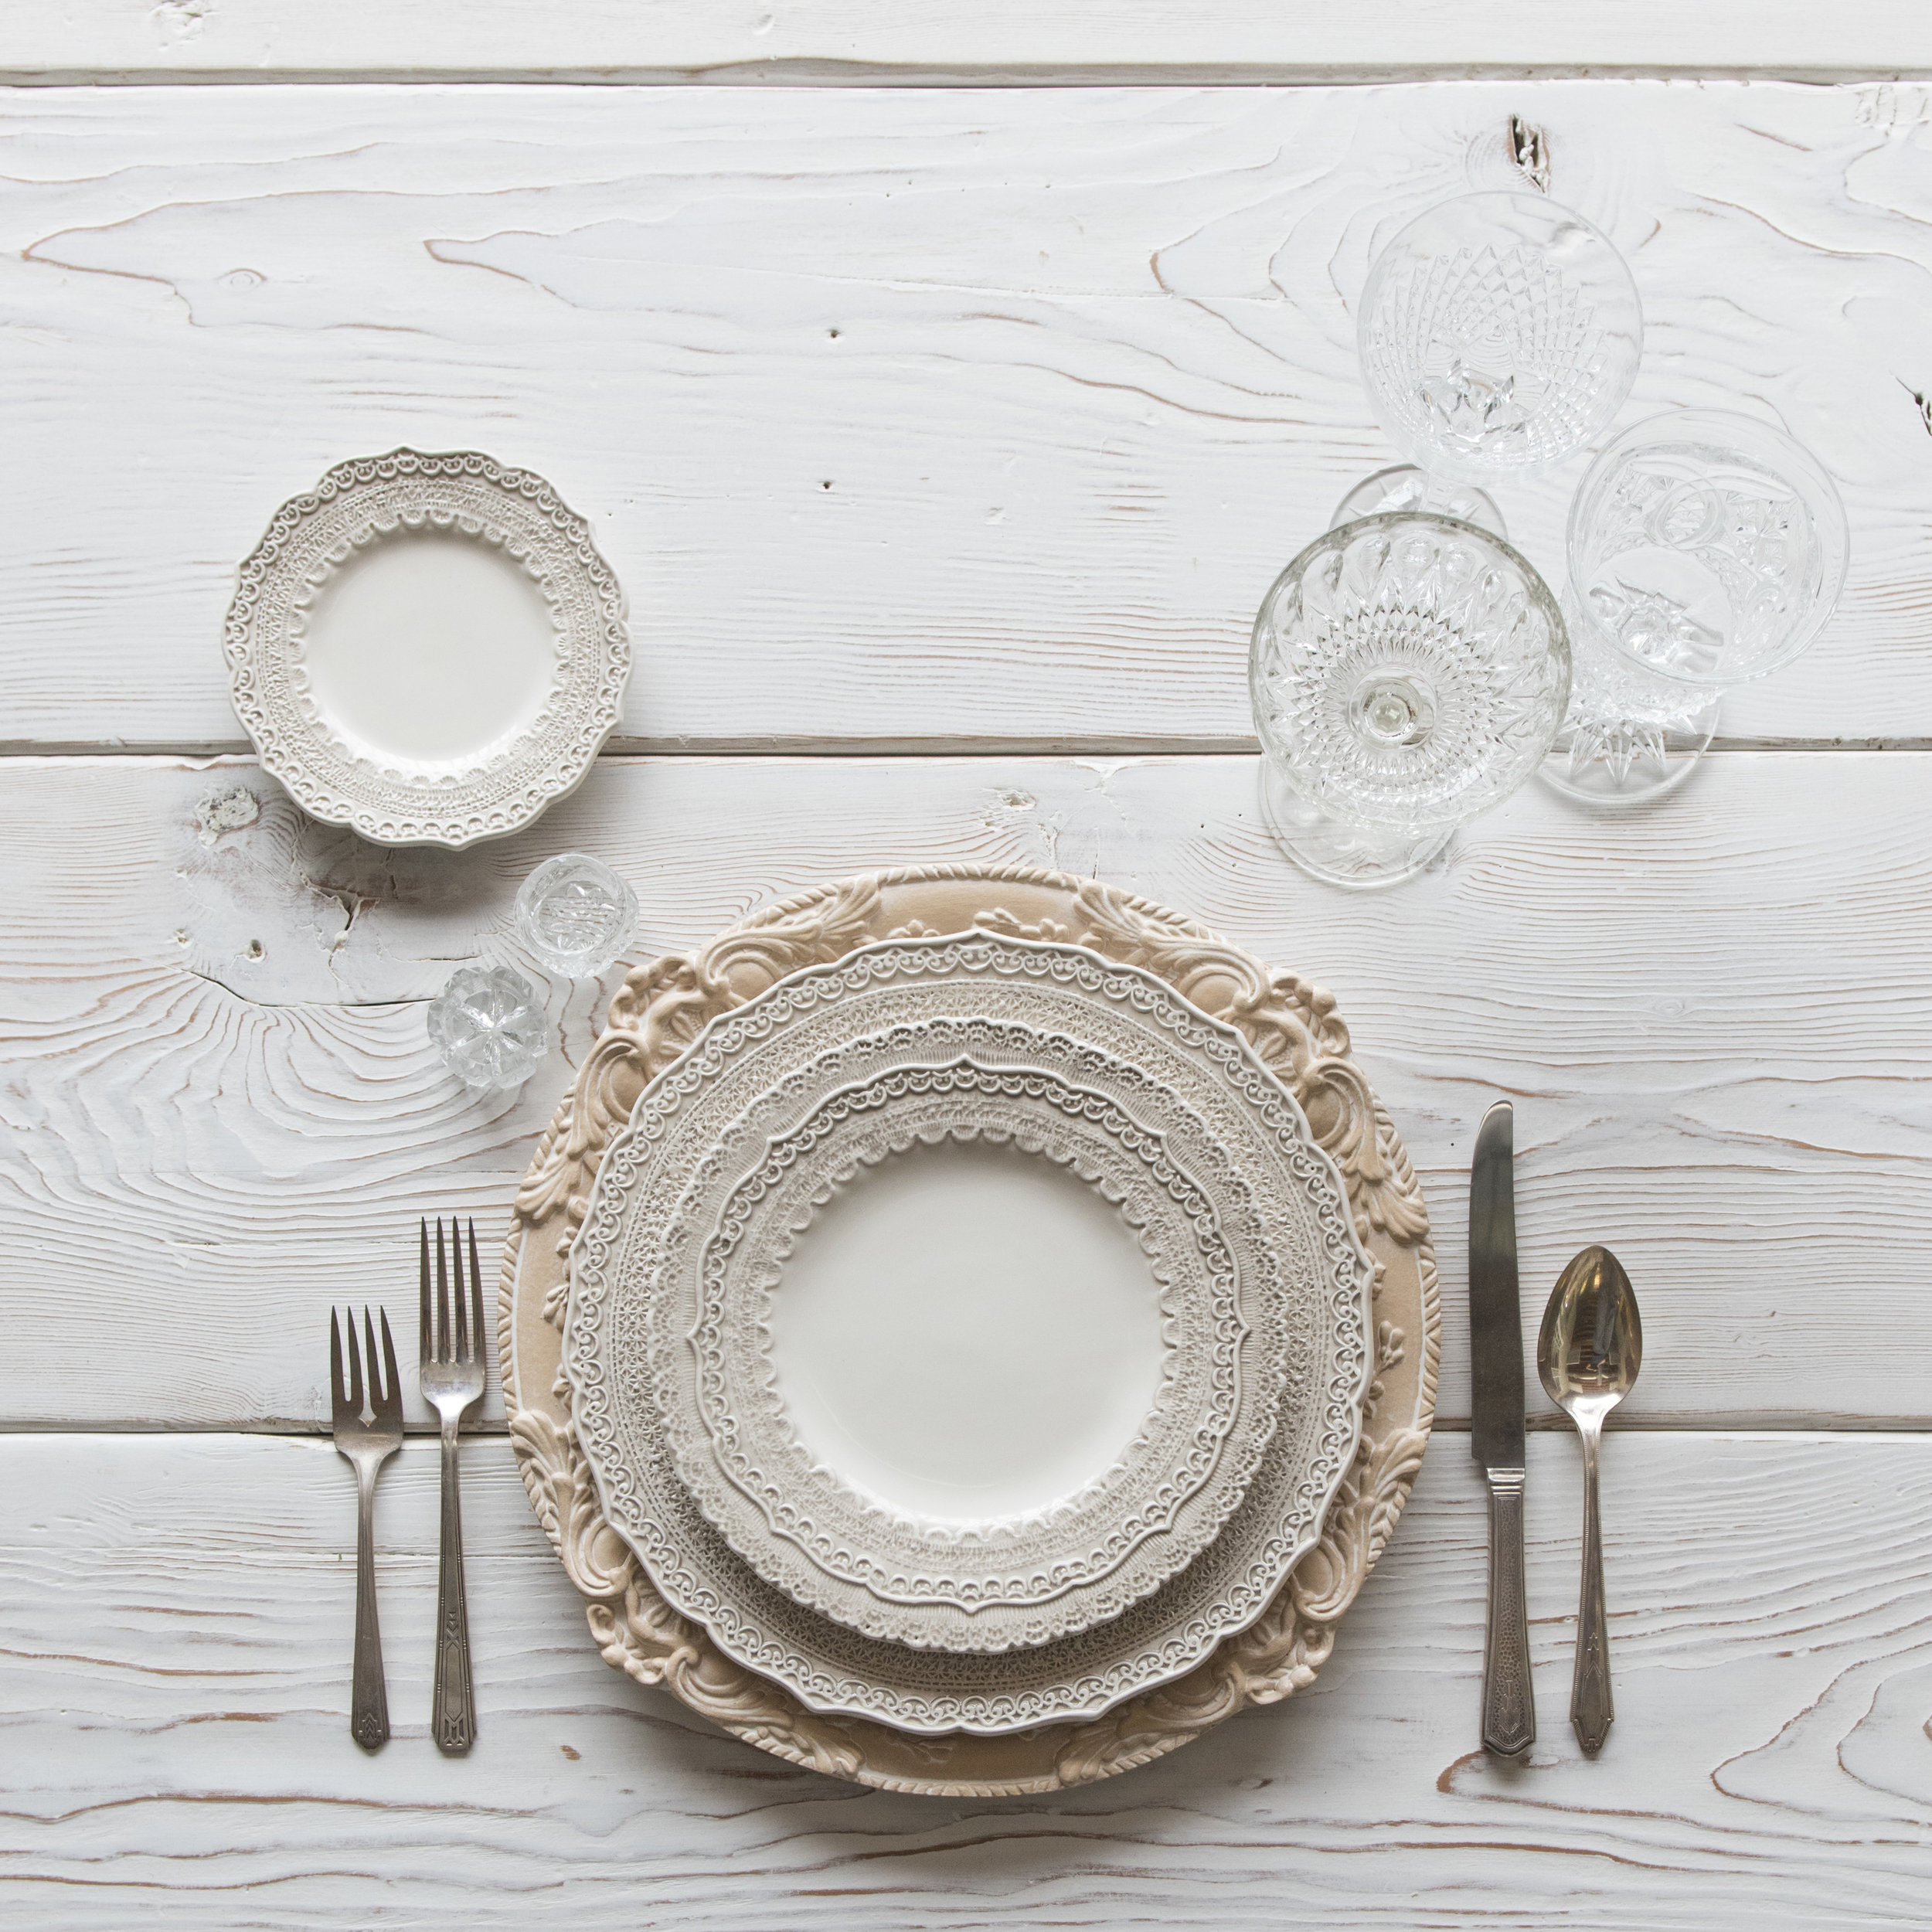 RENT: Verona Chargers in Terracotta + Lace Dinnerware in White + Deco Flatware + Vintage Cut Crystal Goblets + Early American Pressed Glass Goblets + Antique Crystal Salt Cellars  SHOP:Verona Chargers in Terracotta